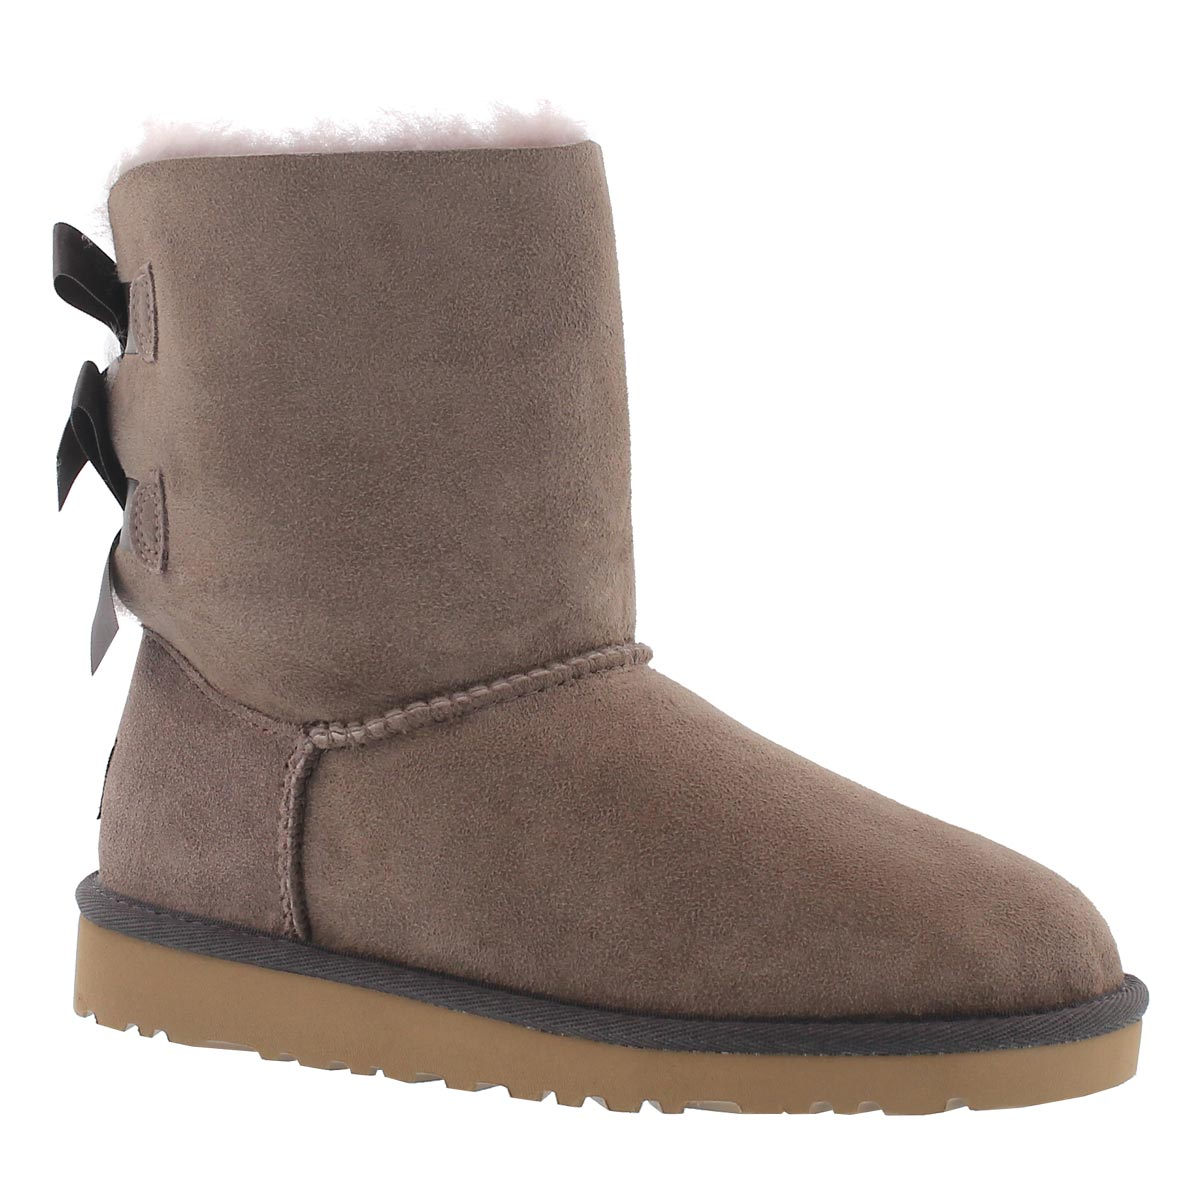 Girls' BAILEY BOW stormy grey sheepskin boots